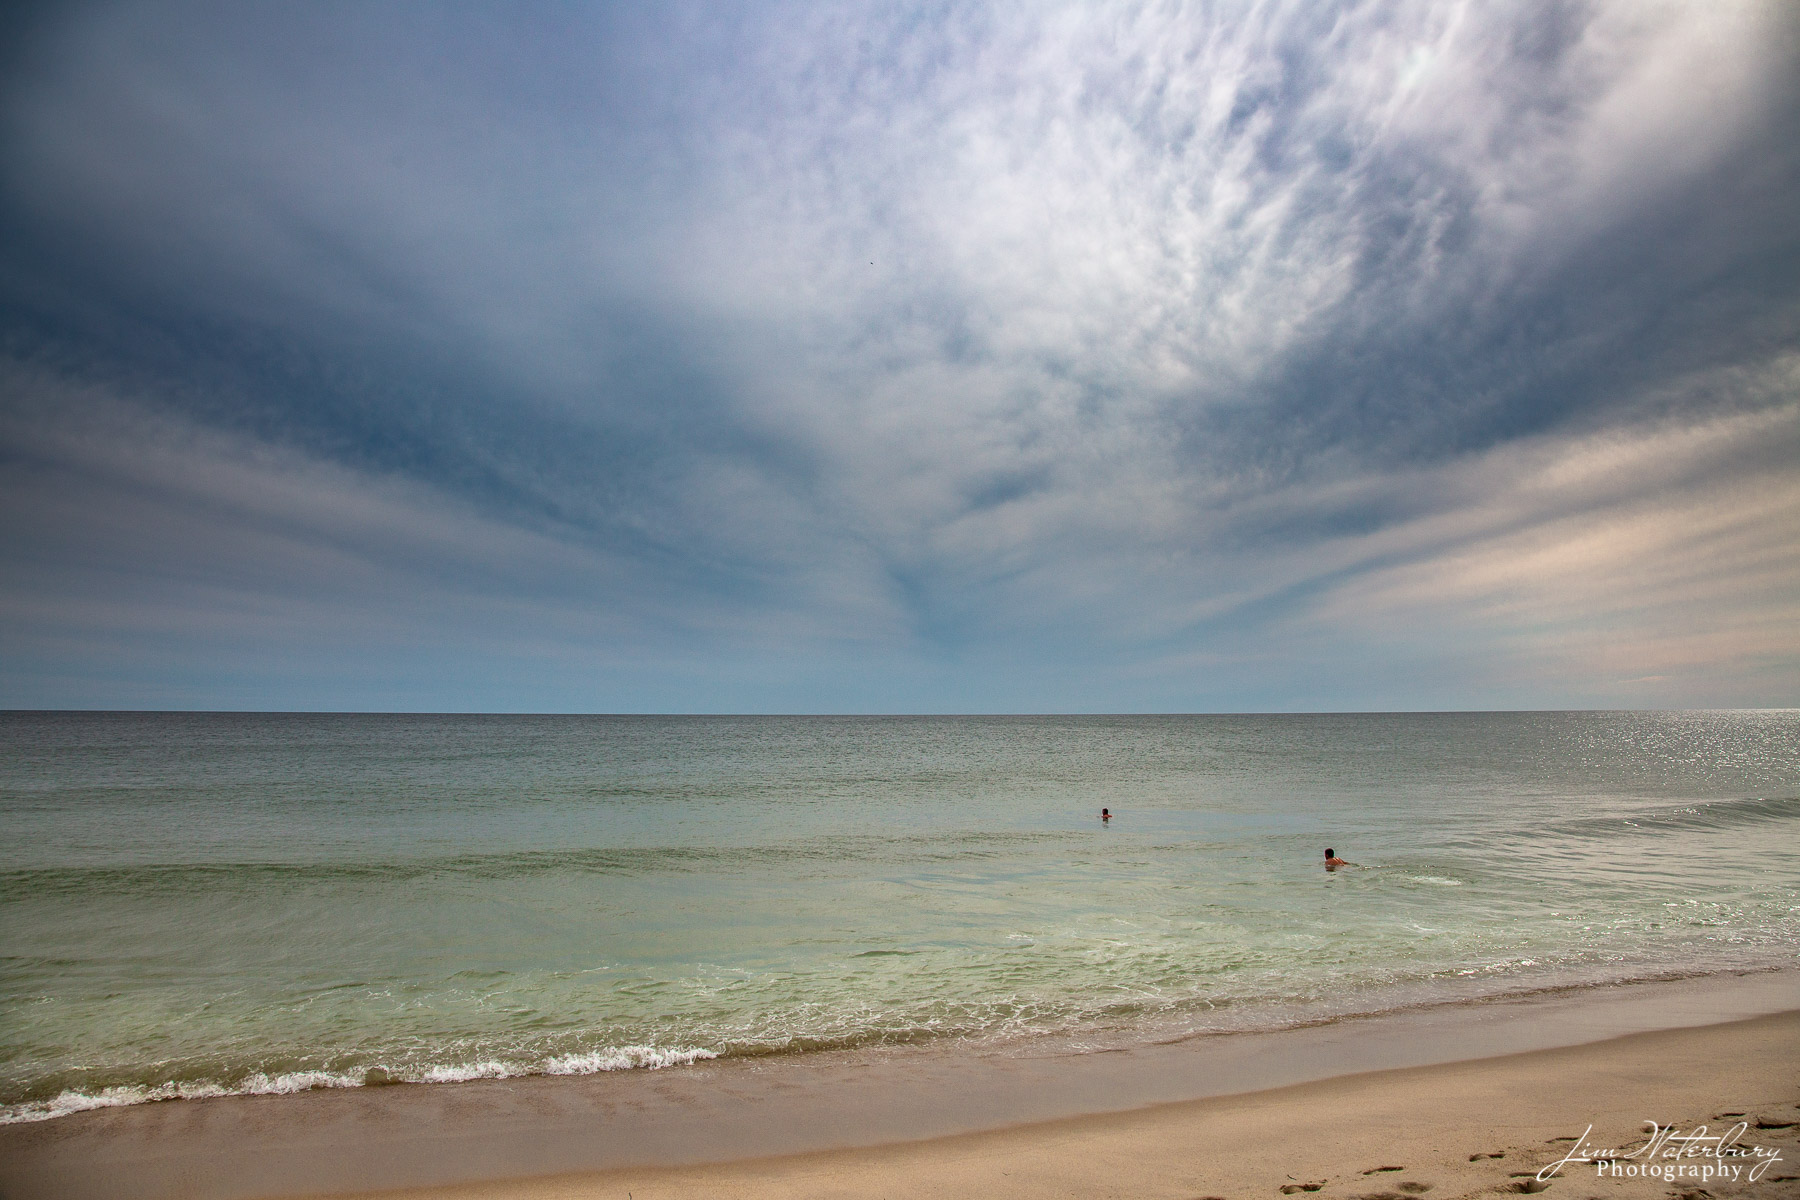 A calm ocean attracts two swimmers under a stormy late afternoon sky in Nantucket.